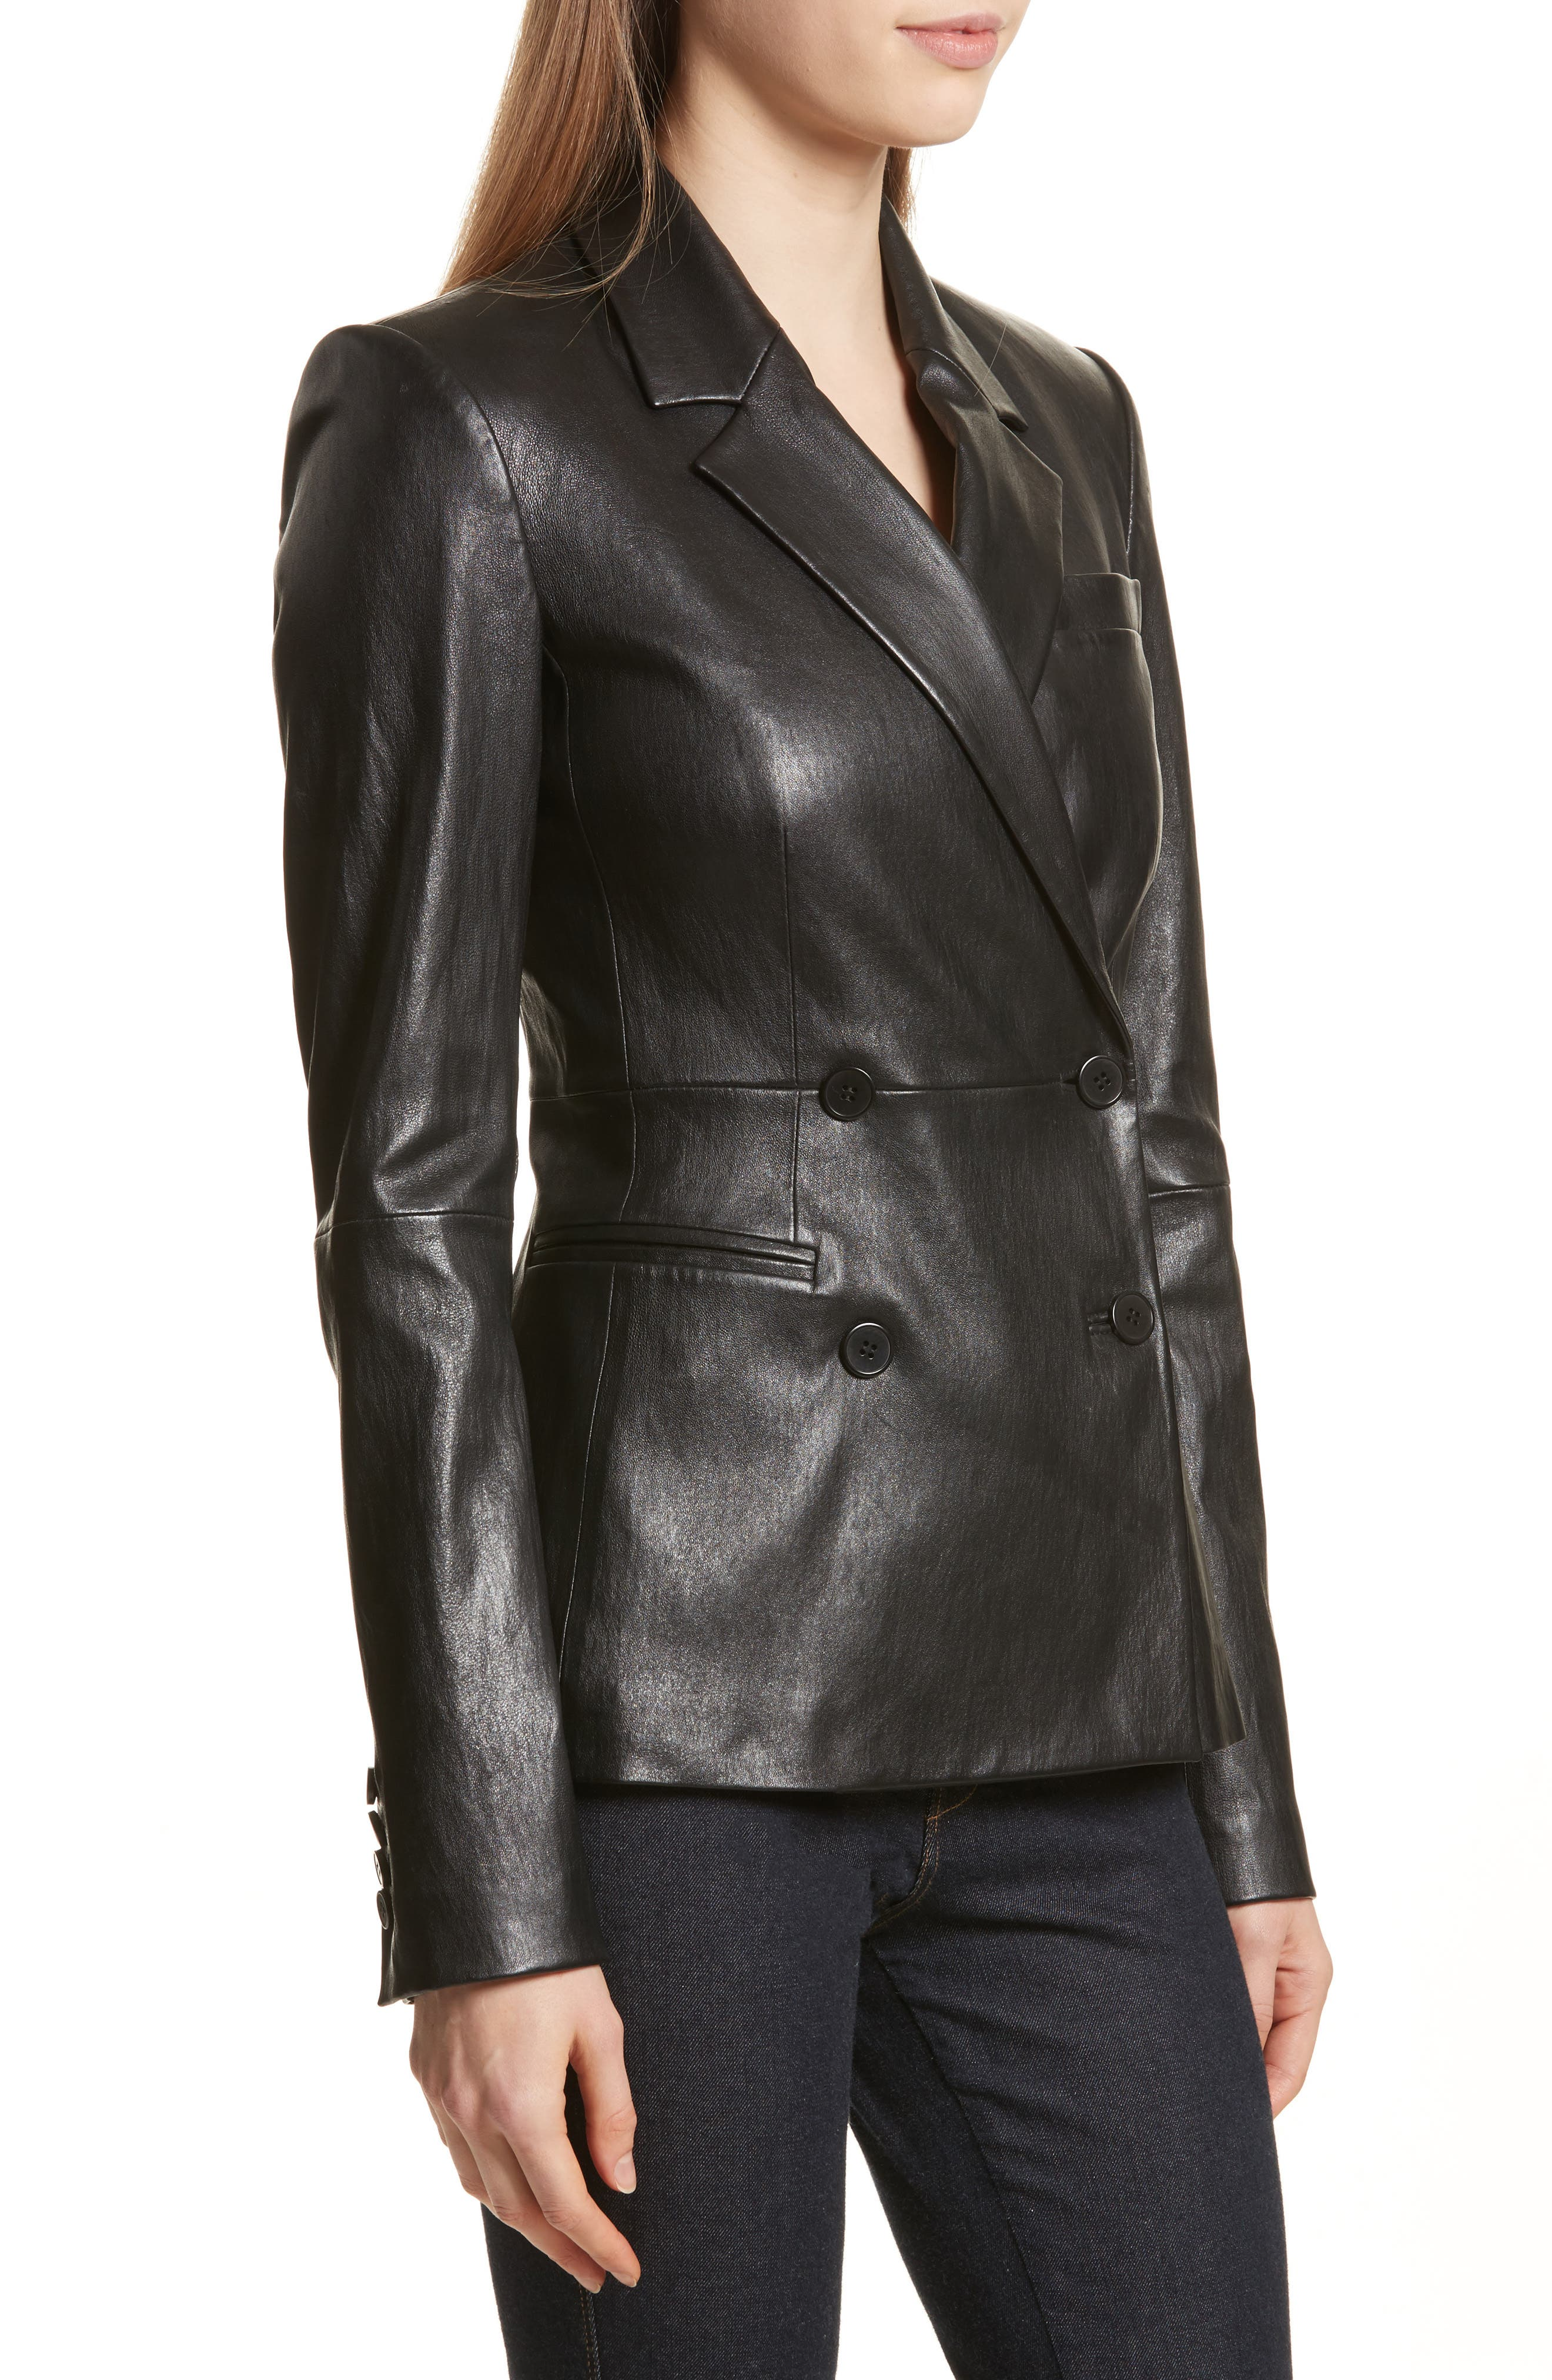 Bristol Leather Blazer,                             Alternate thumbnail 4, color,                             Black